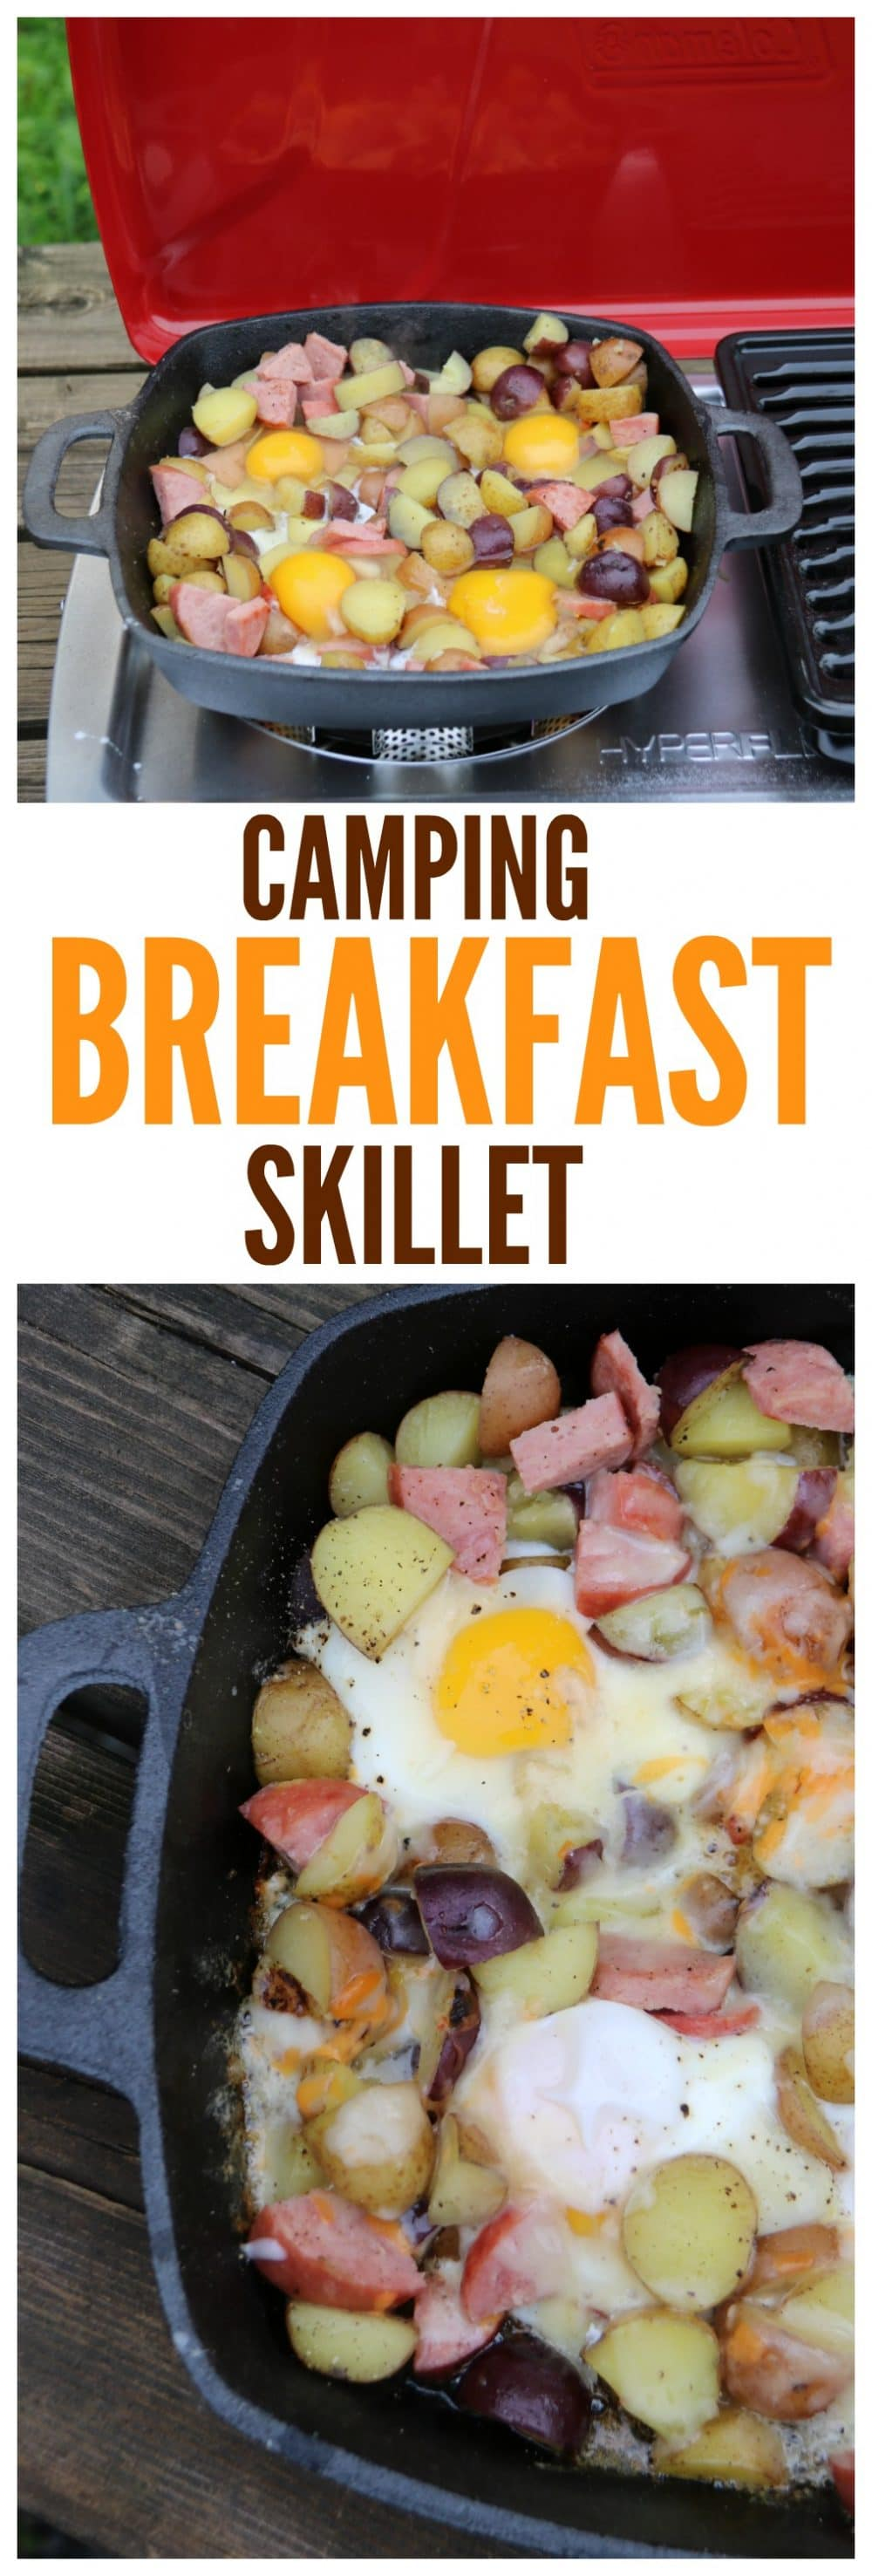 Stove or Campfire Camping Breakfast Skillet Recipe